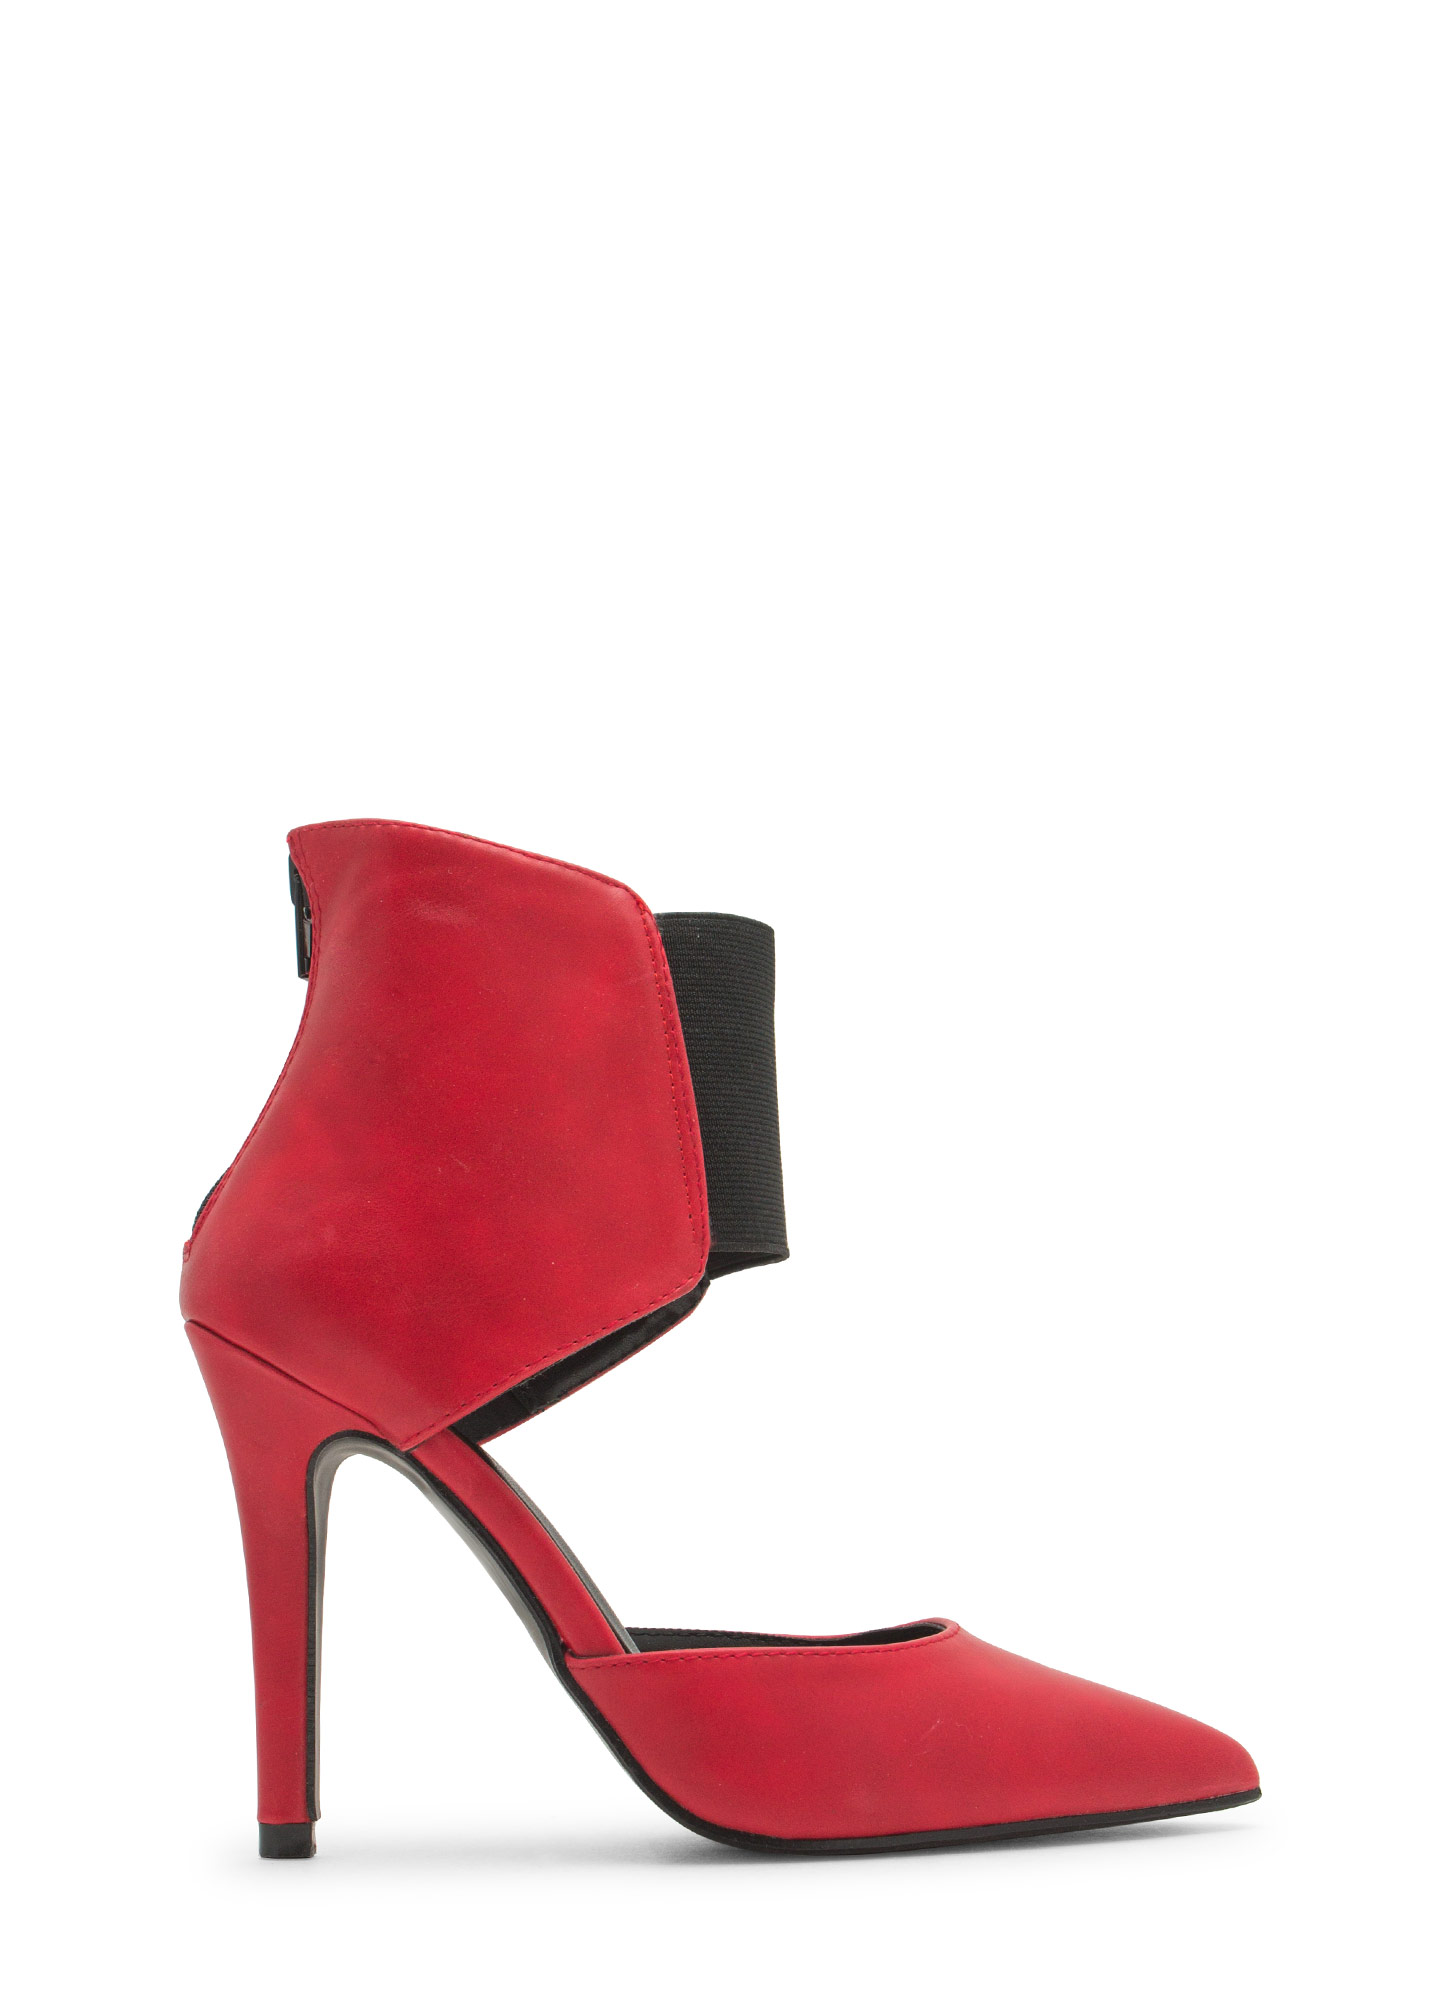 Bootie-licious Pointy Faux Leather Heels RED